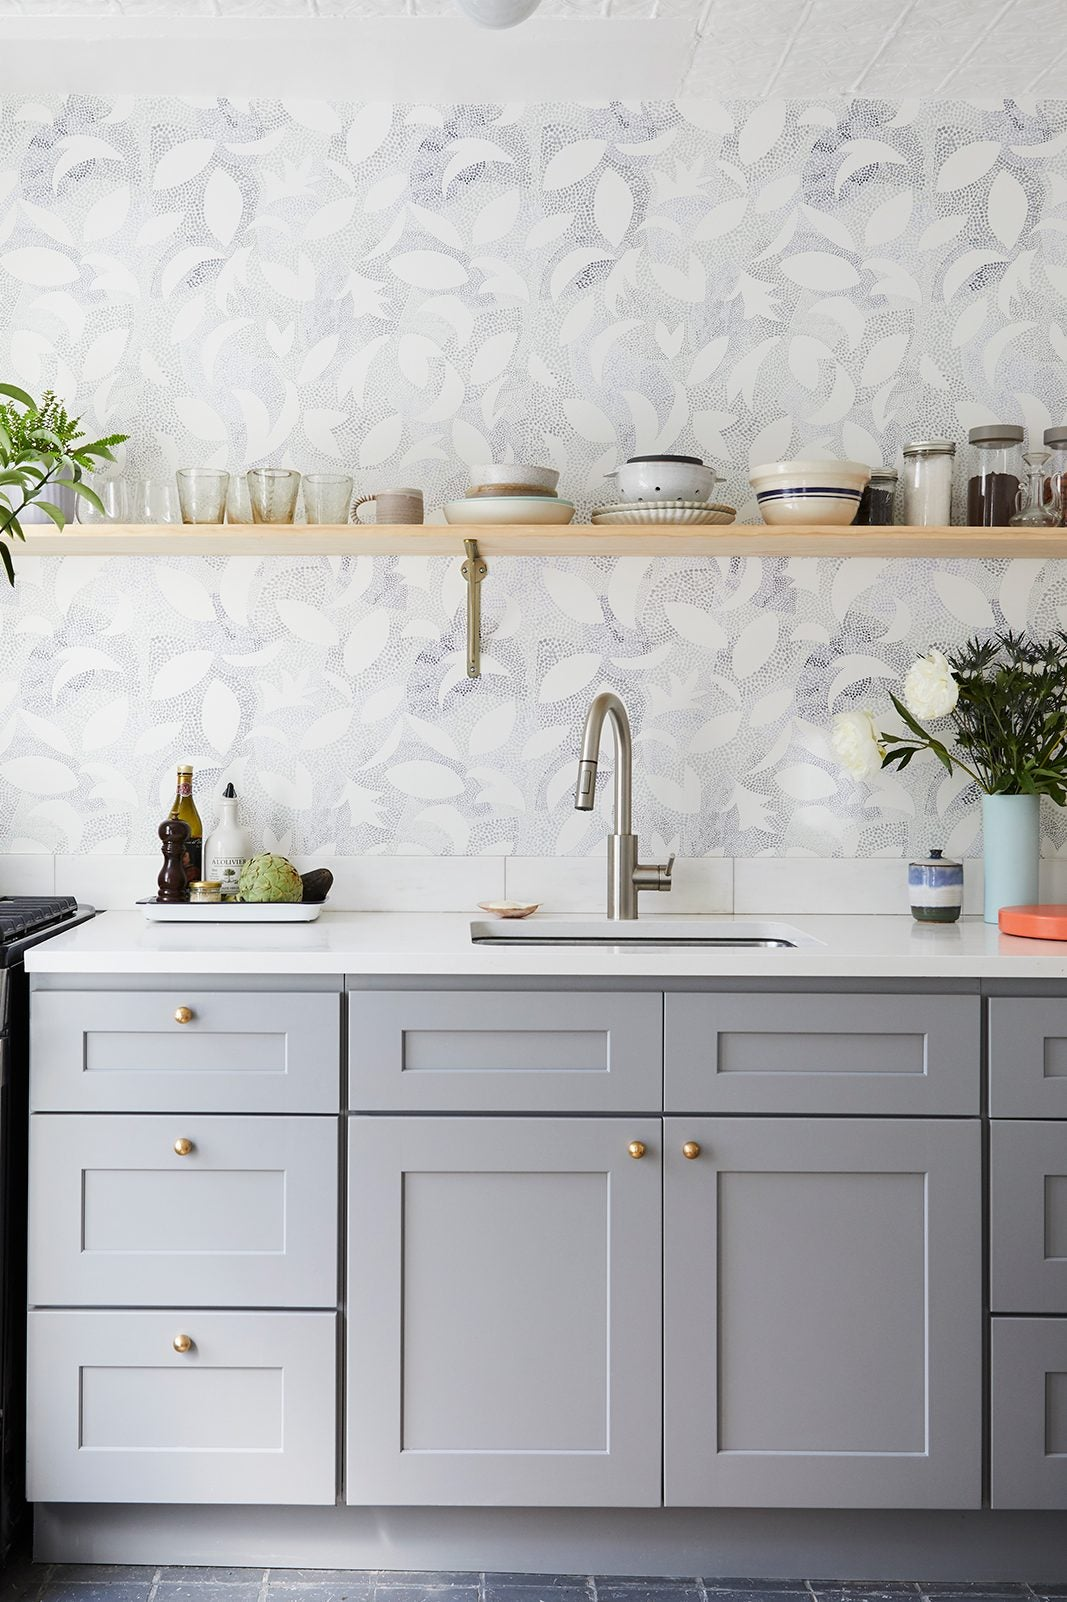 gray cabinets and open kitchen shelves